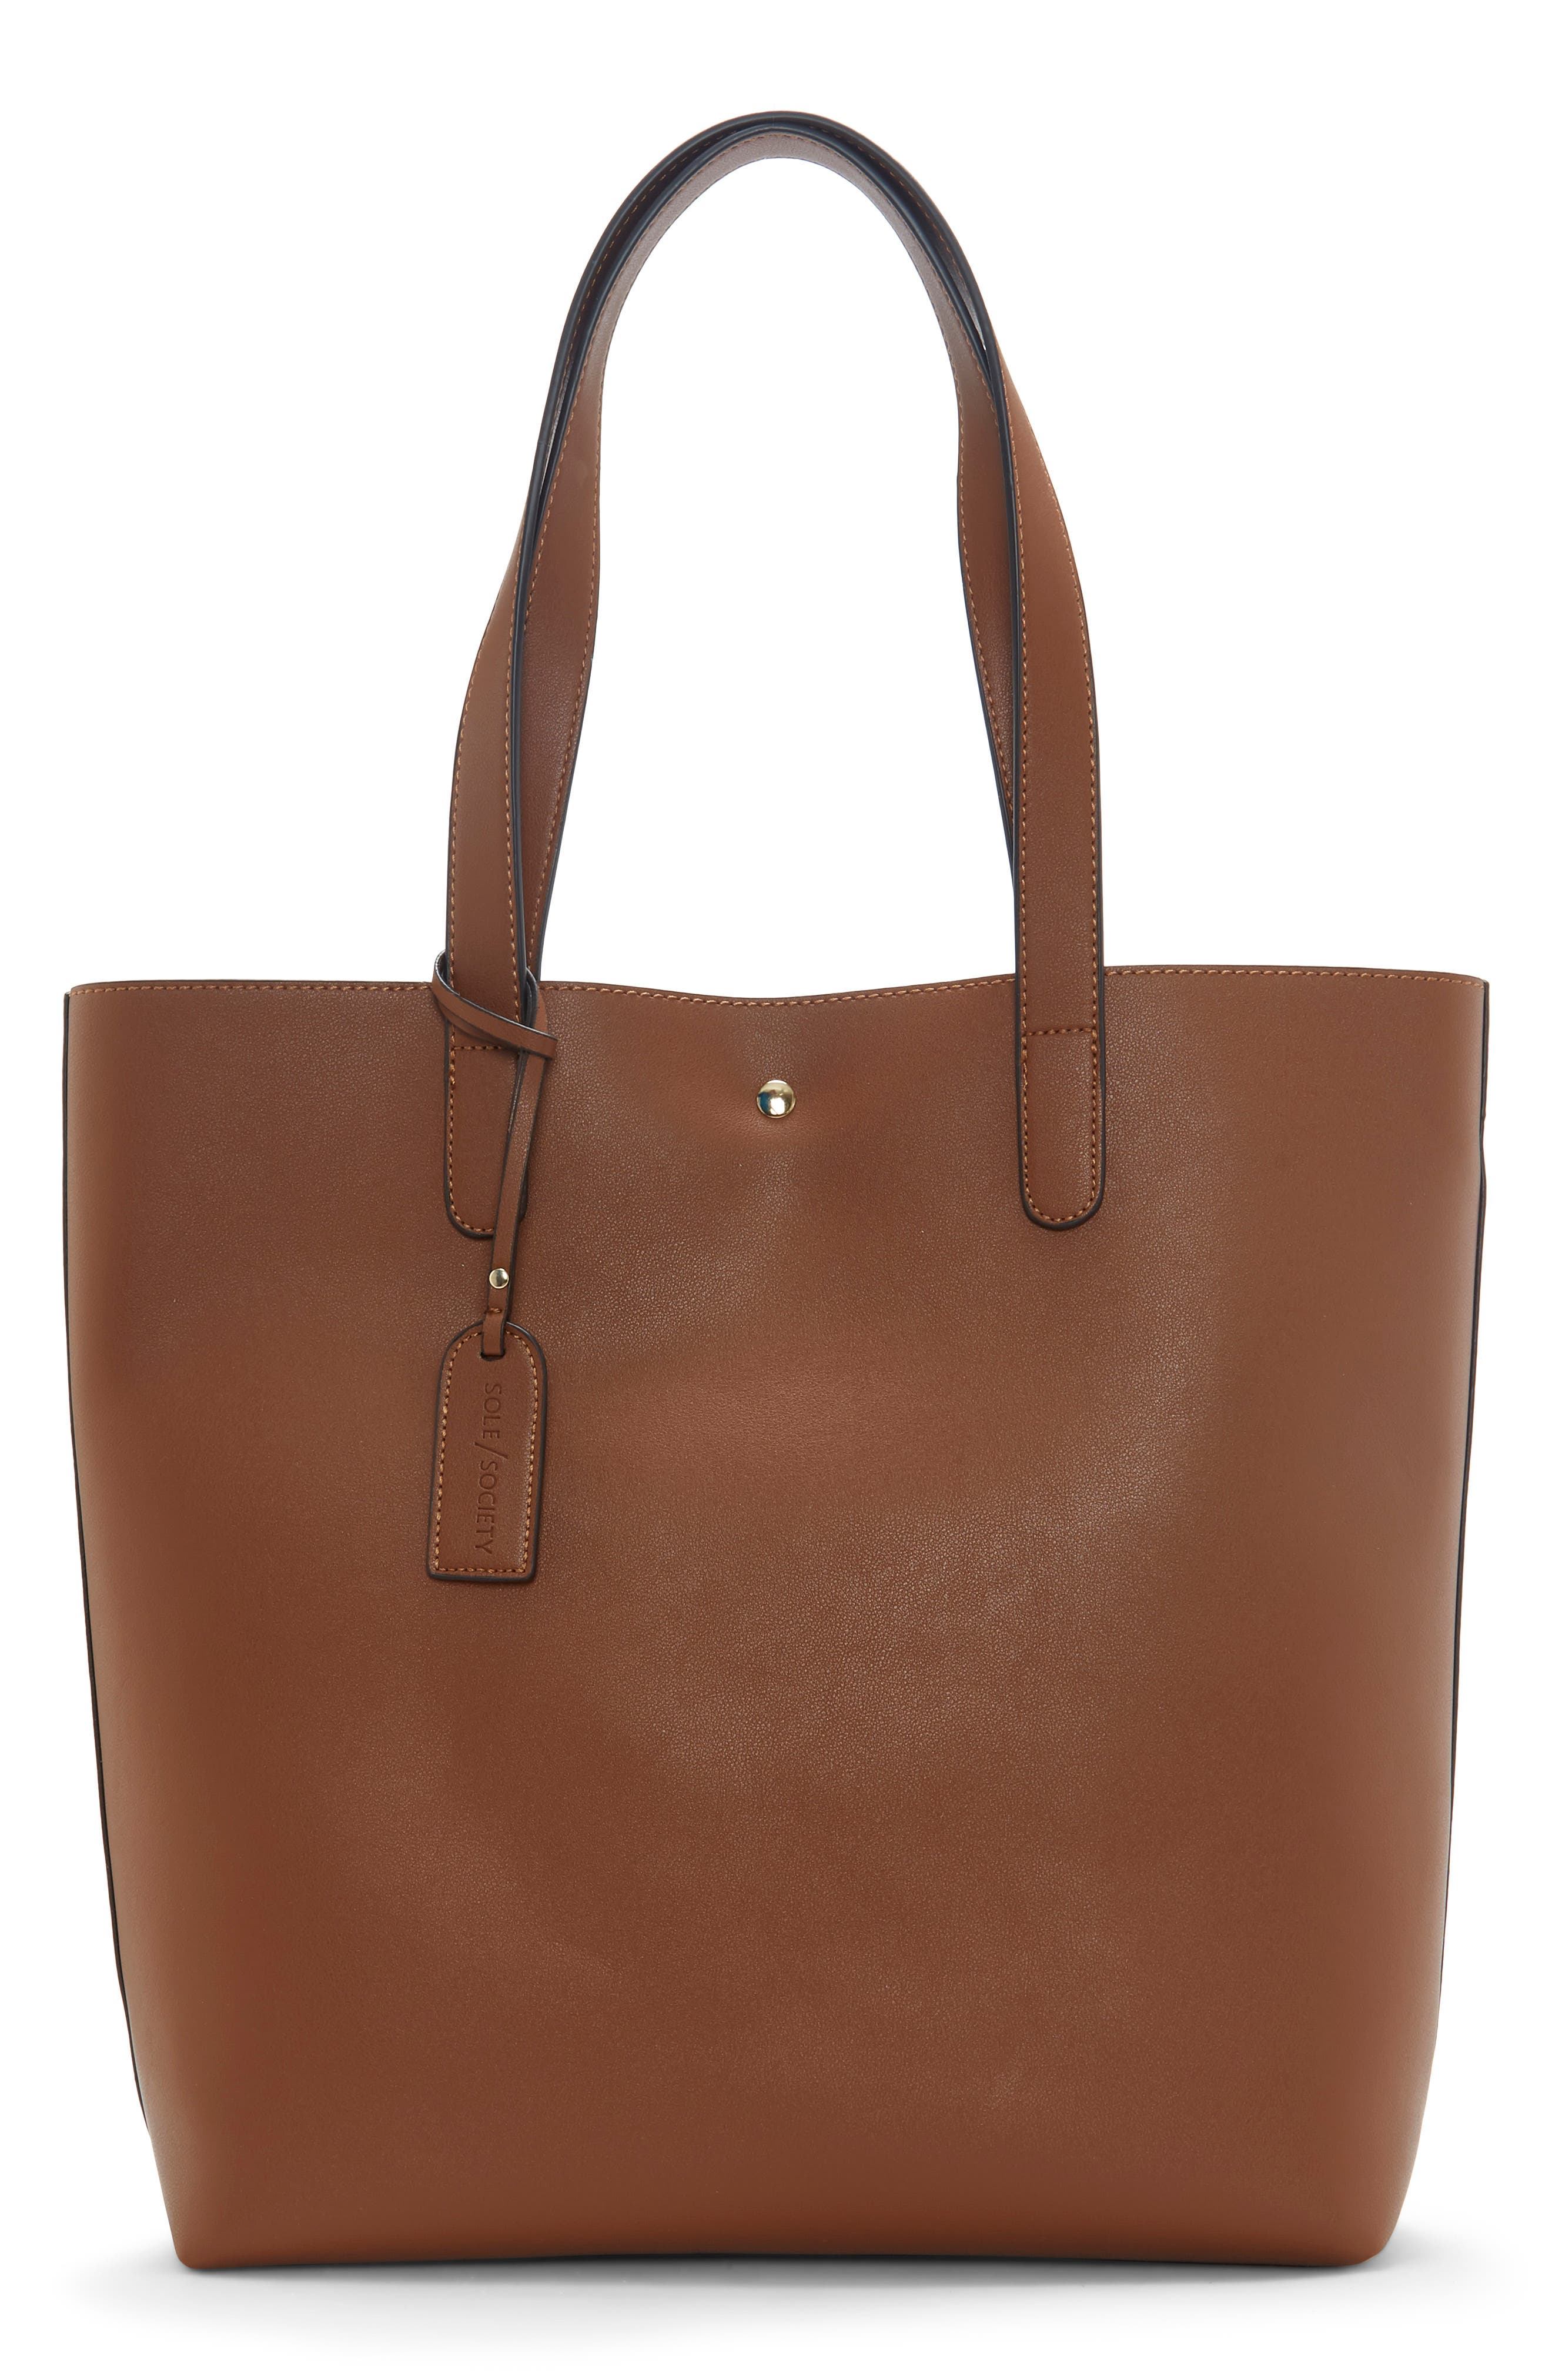 This smooth faux-leather tote is nice and deep so you can toss almost anything into it throughout the day. Style Name: Sole Society Hyda Faux Leather Tote. Style Number: 6070477. Available in stores.